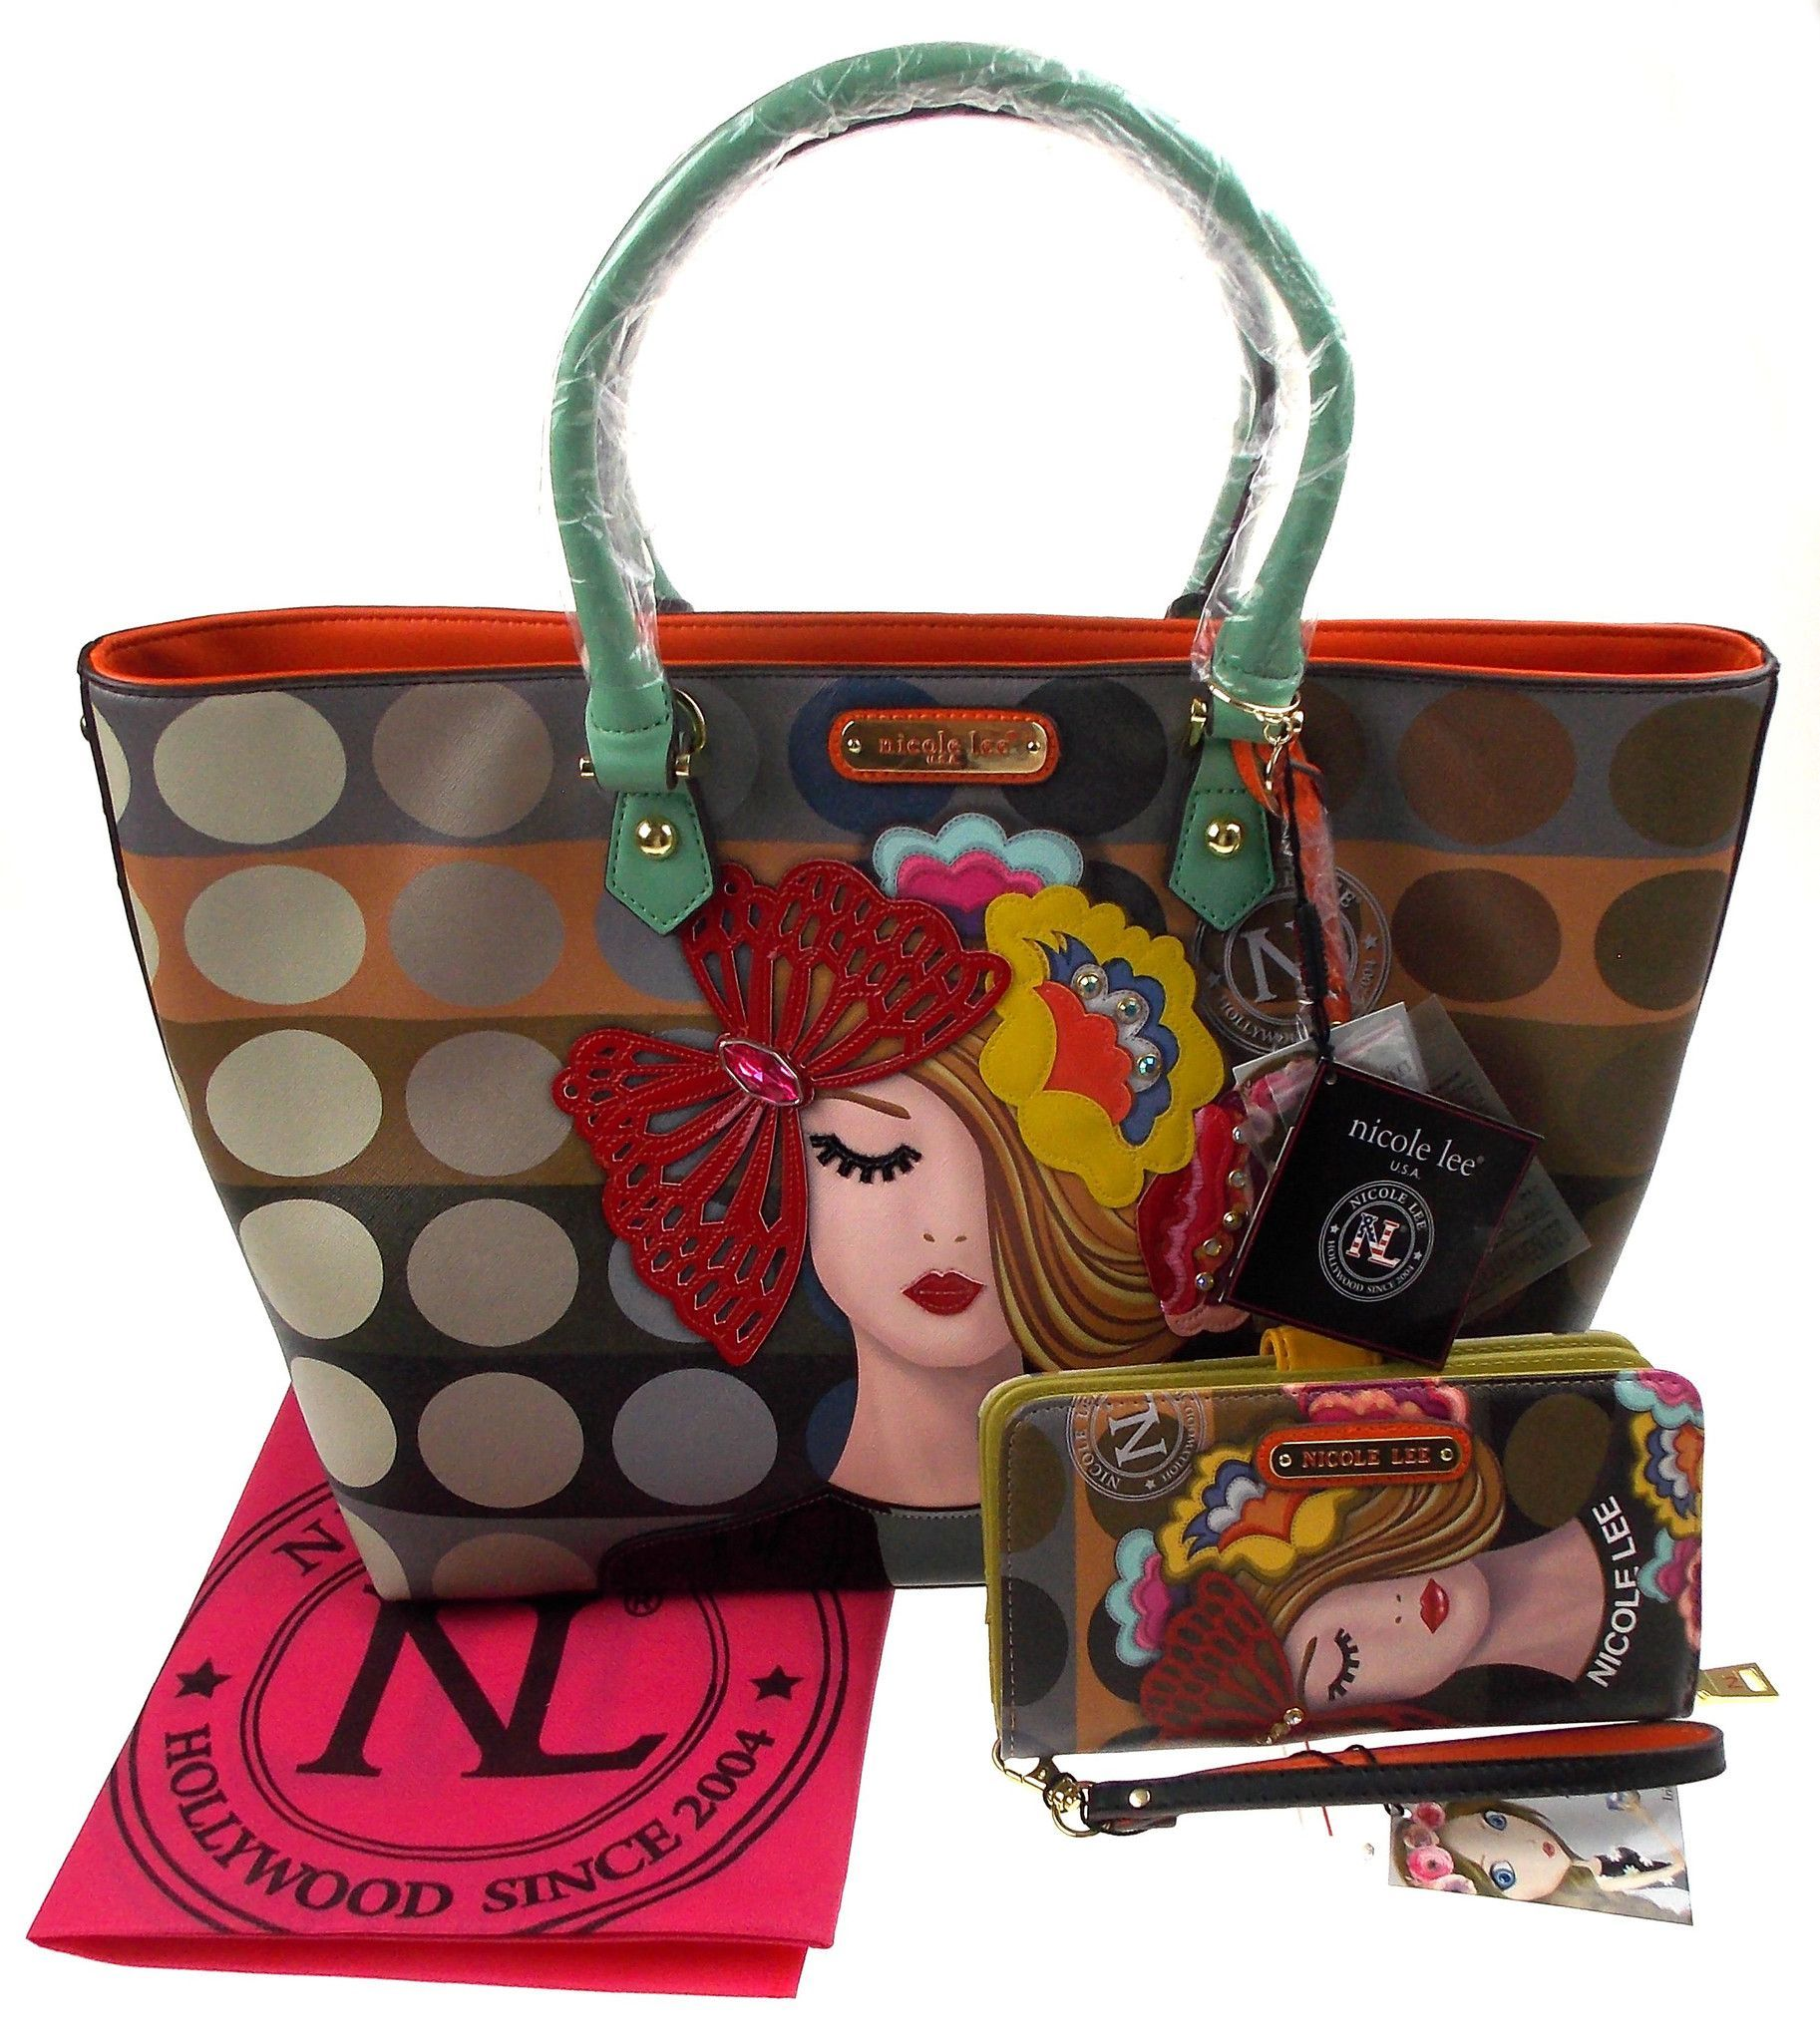 Vicky Print amp; VIC11688 Thinks Handbag Wallet Tote Fashion Nicole Lee gCn5Wxfn